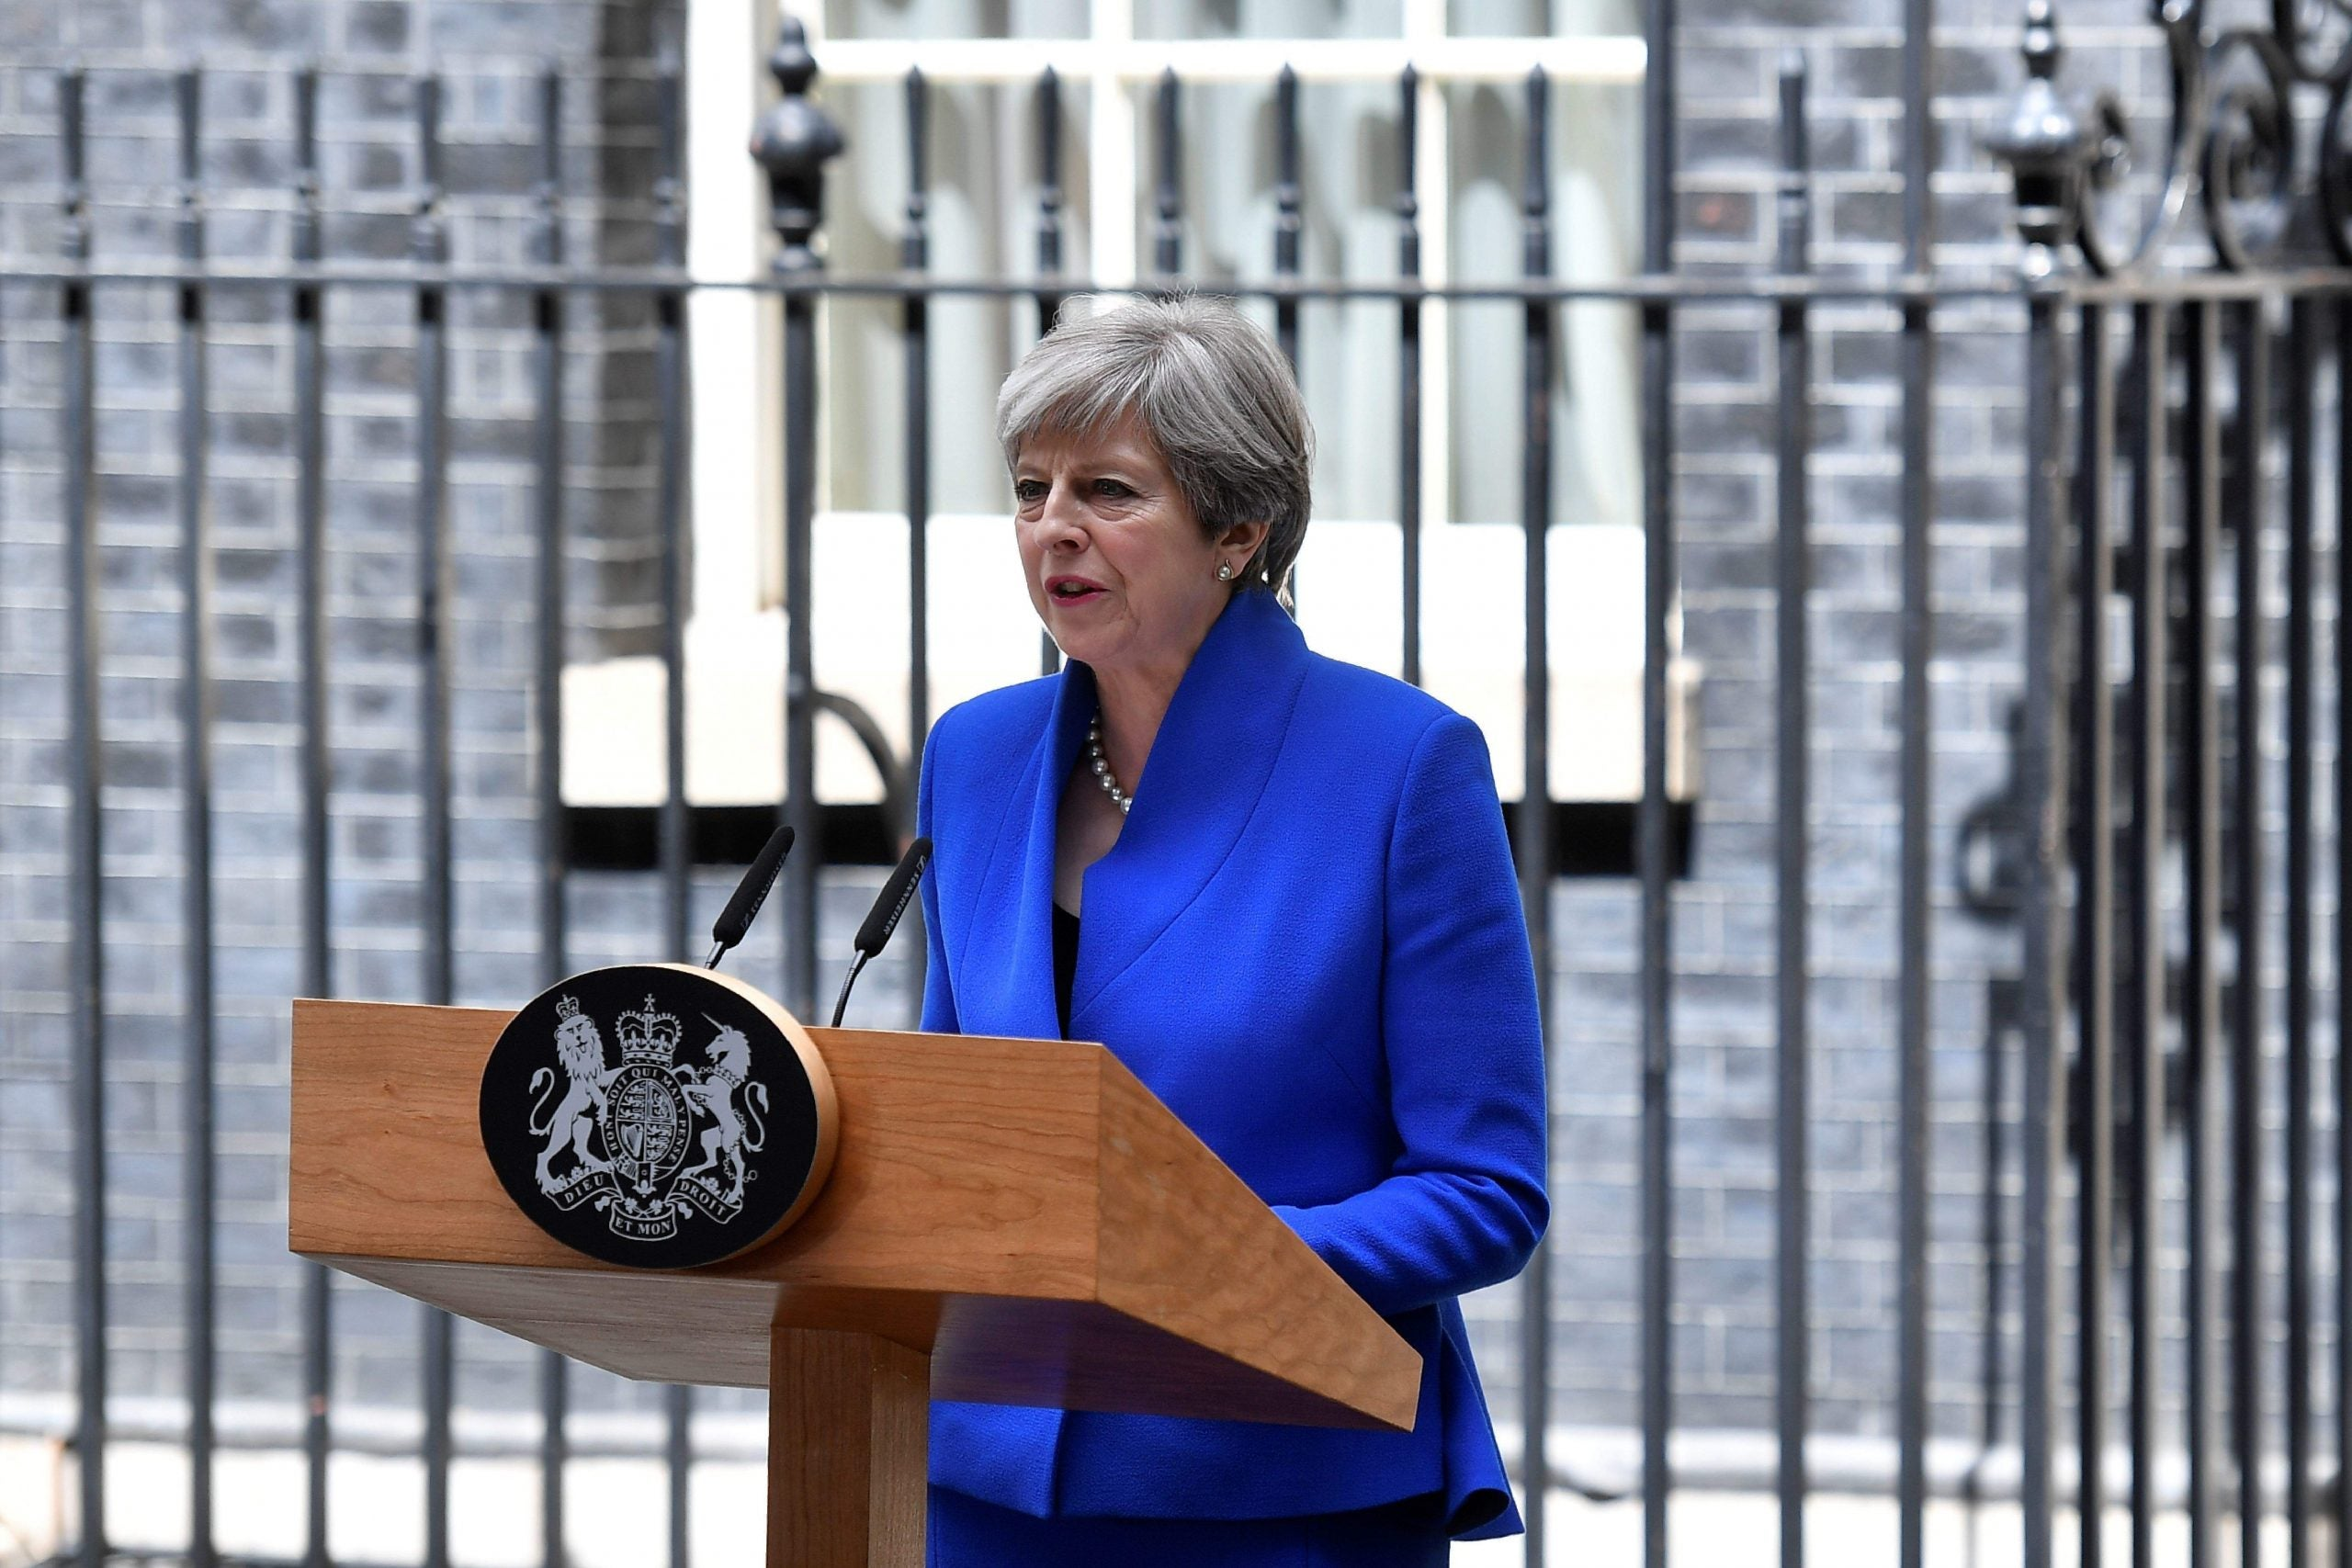 The consensus is that there must be an orderly transition – but Theresa May is finished